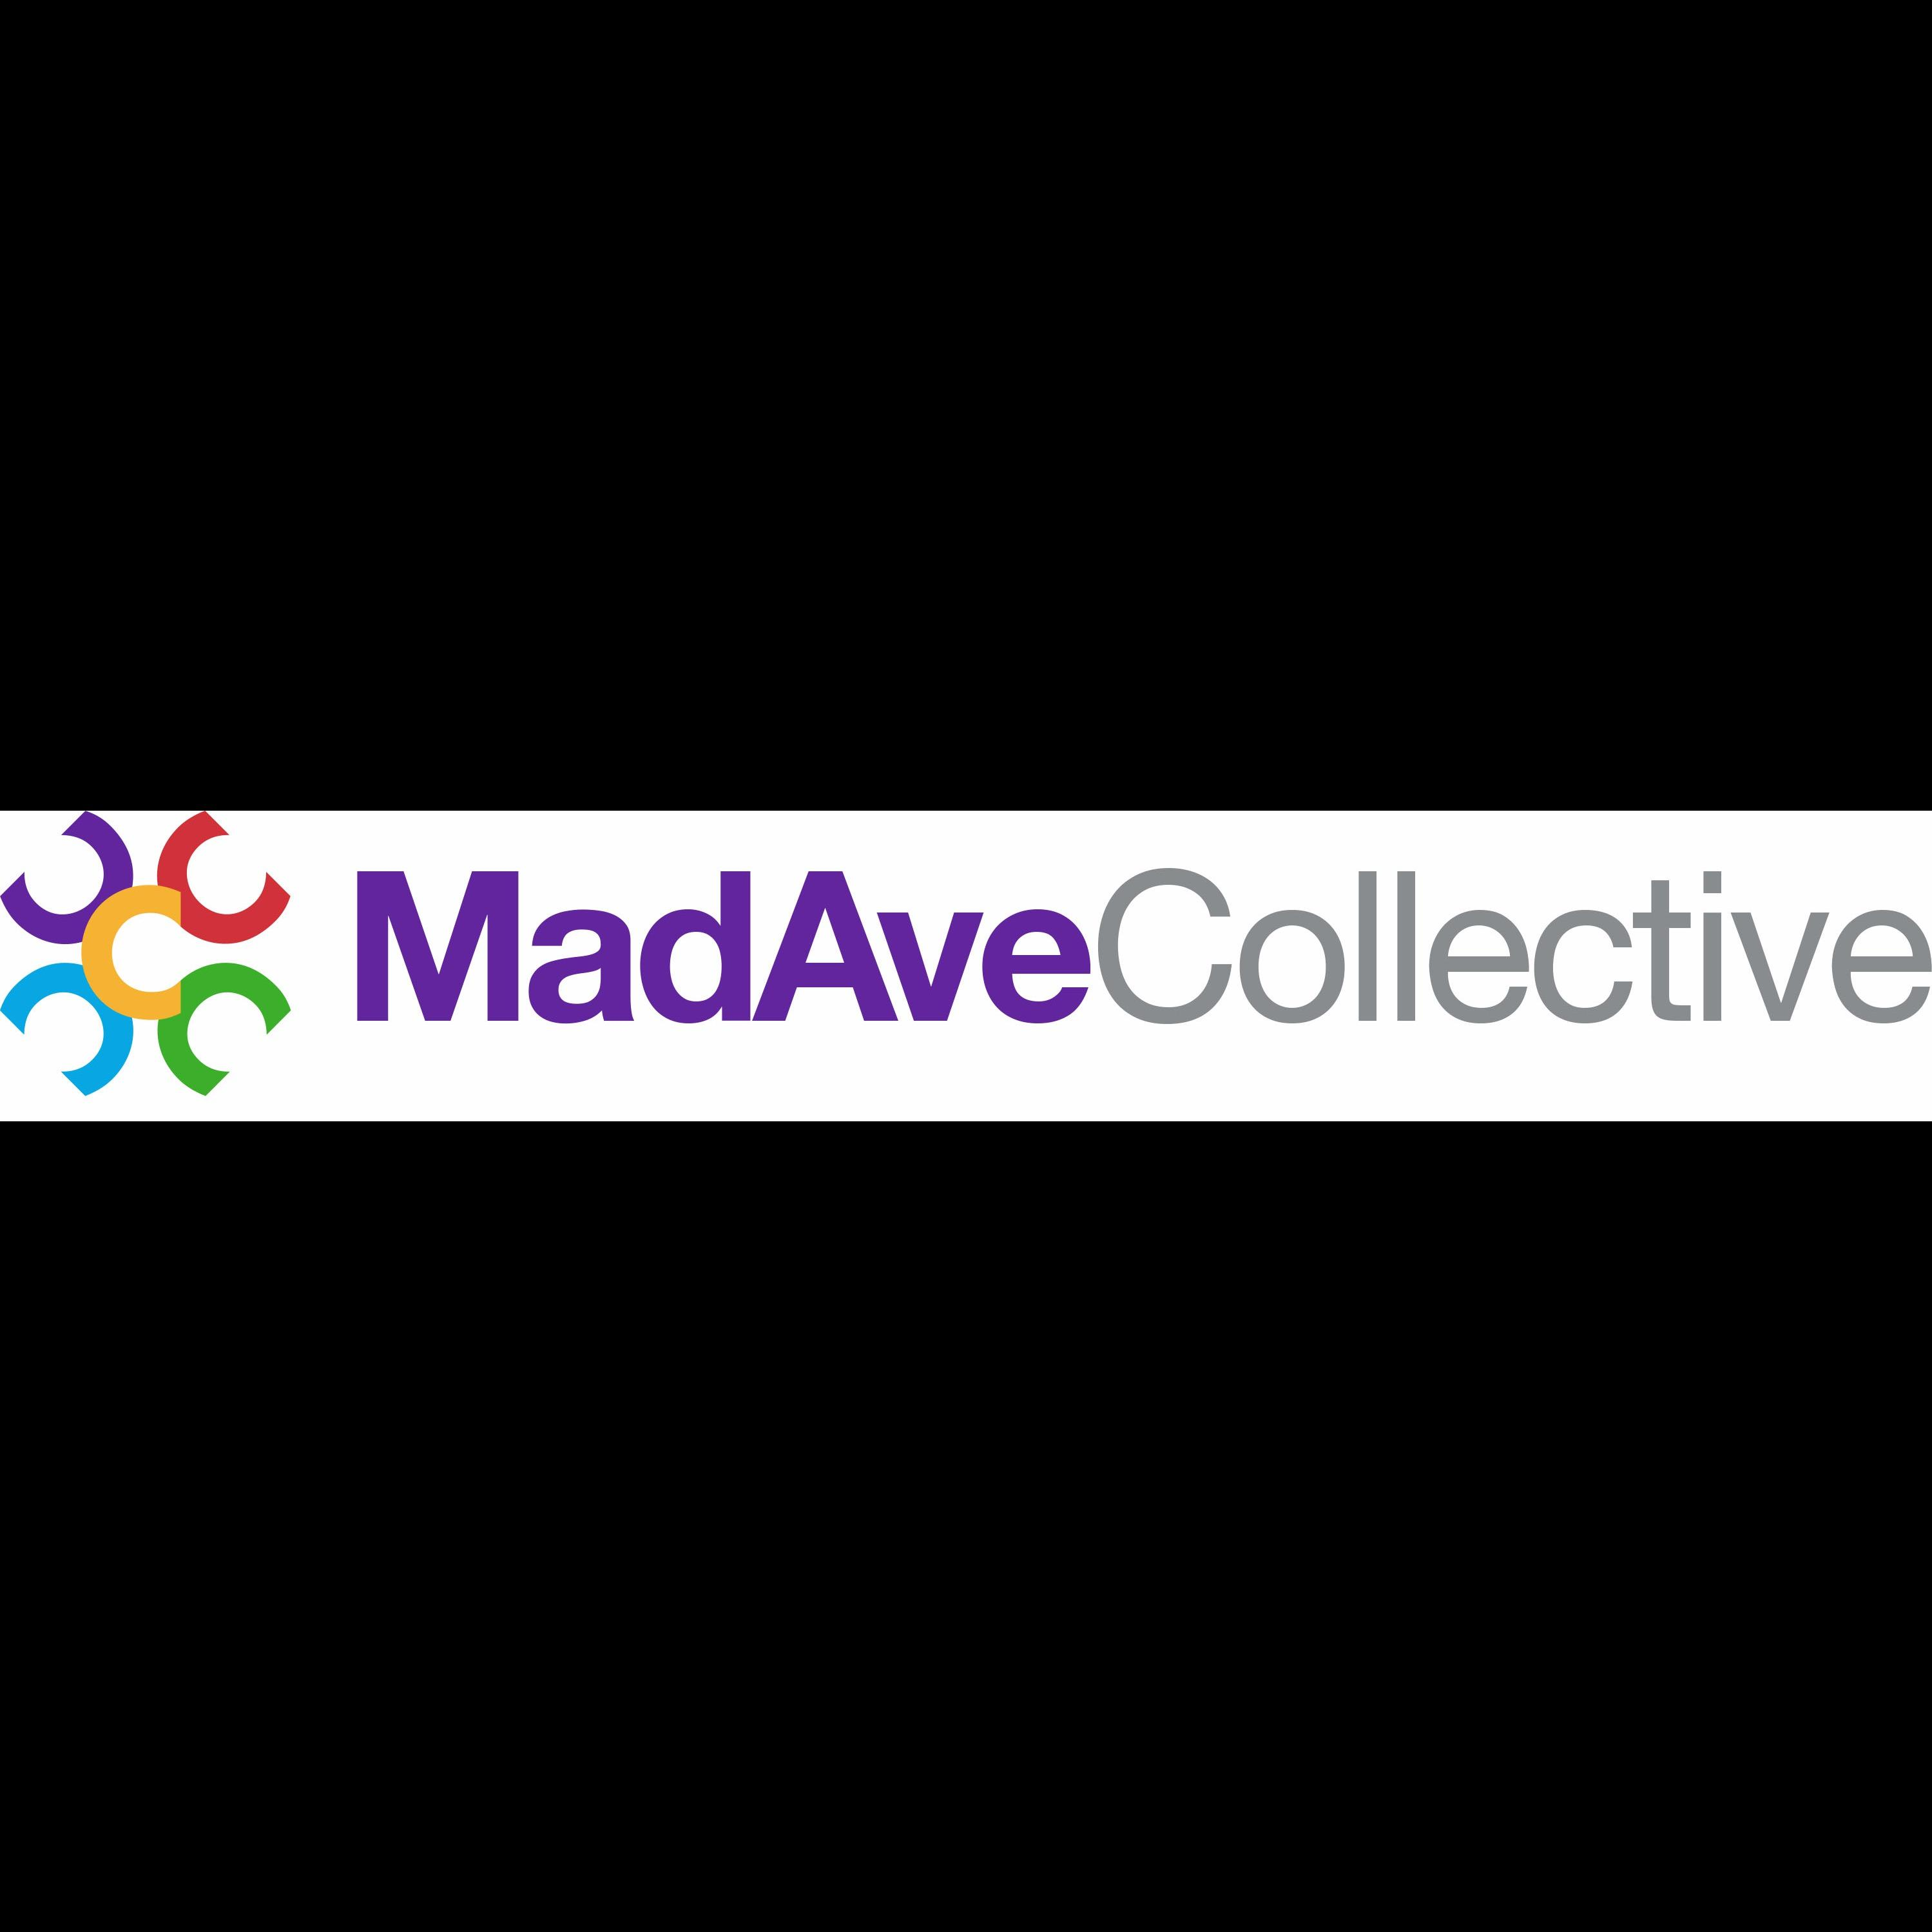 Mad Ave Collective